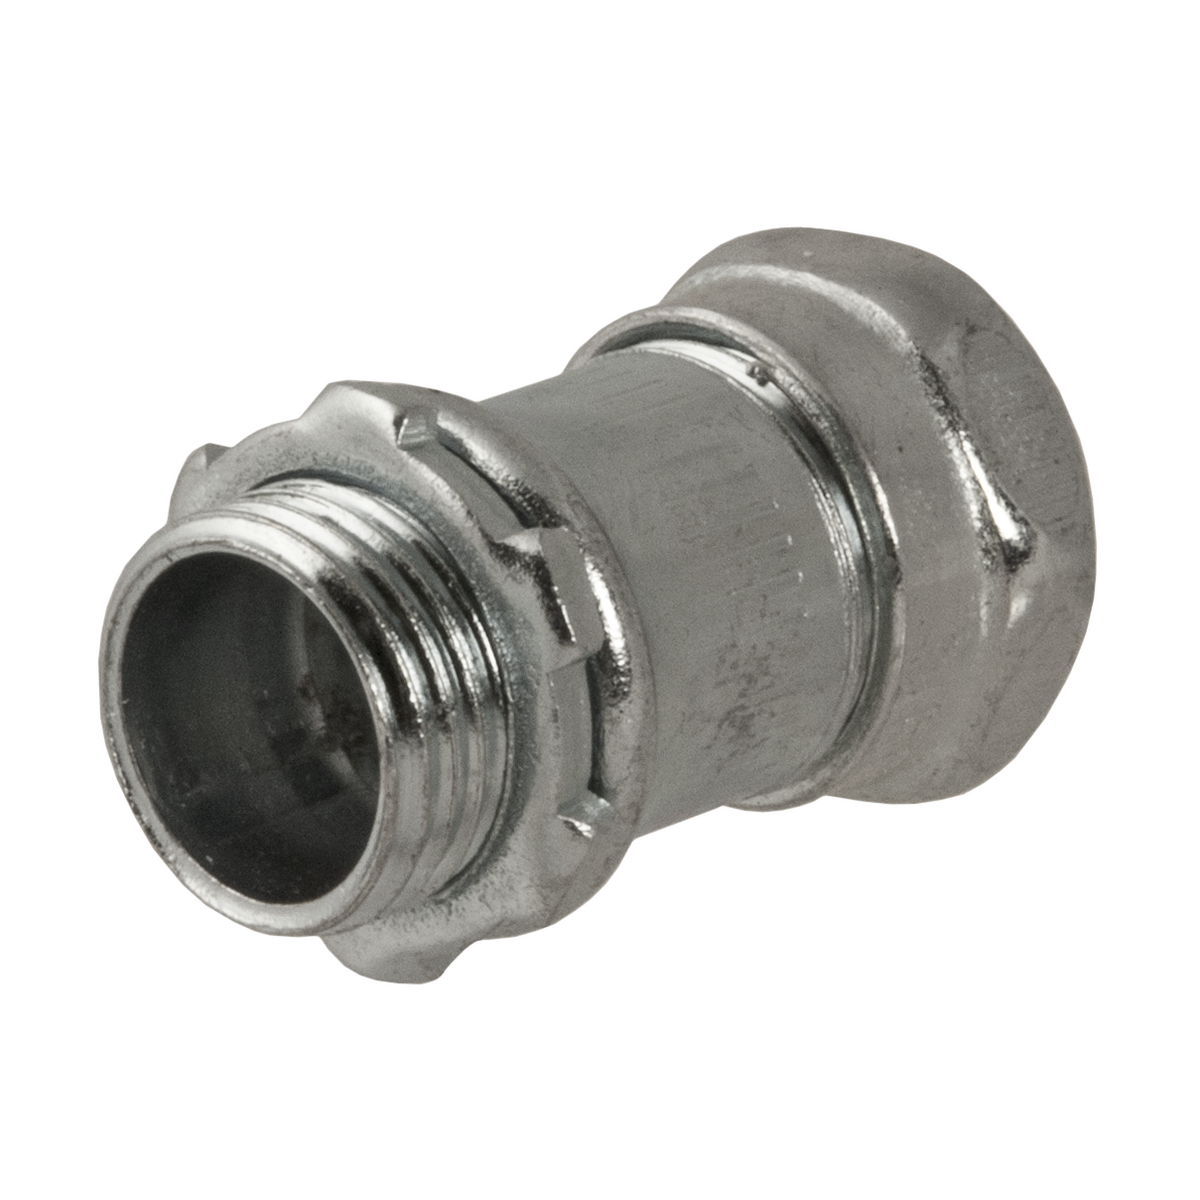 Hubbell-Raco 2905 Compression Connector